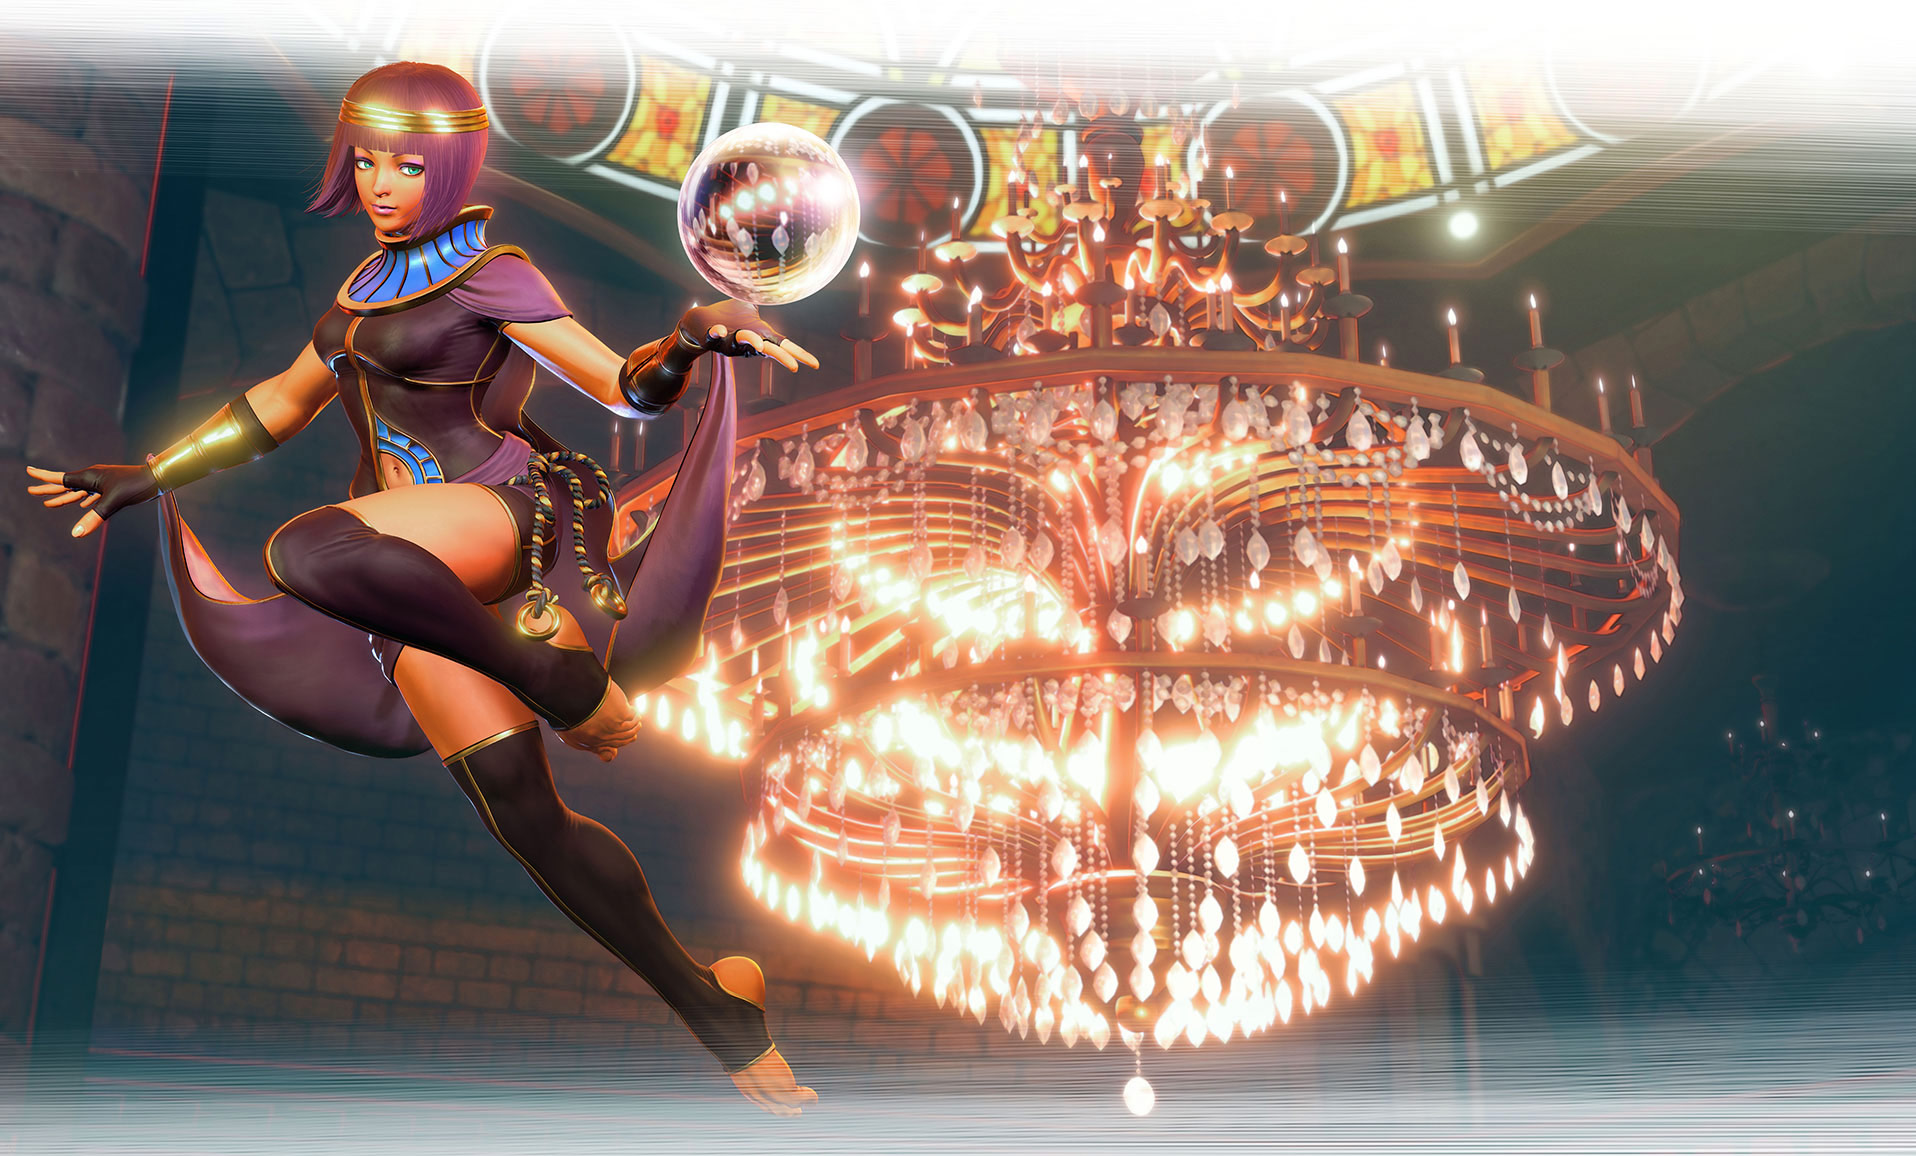 Menat in Street Fighter 5 1 out of 11 image gallery